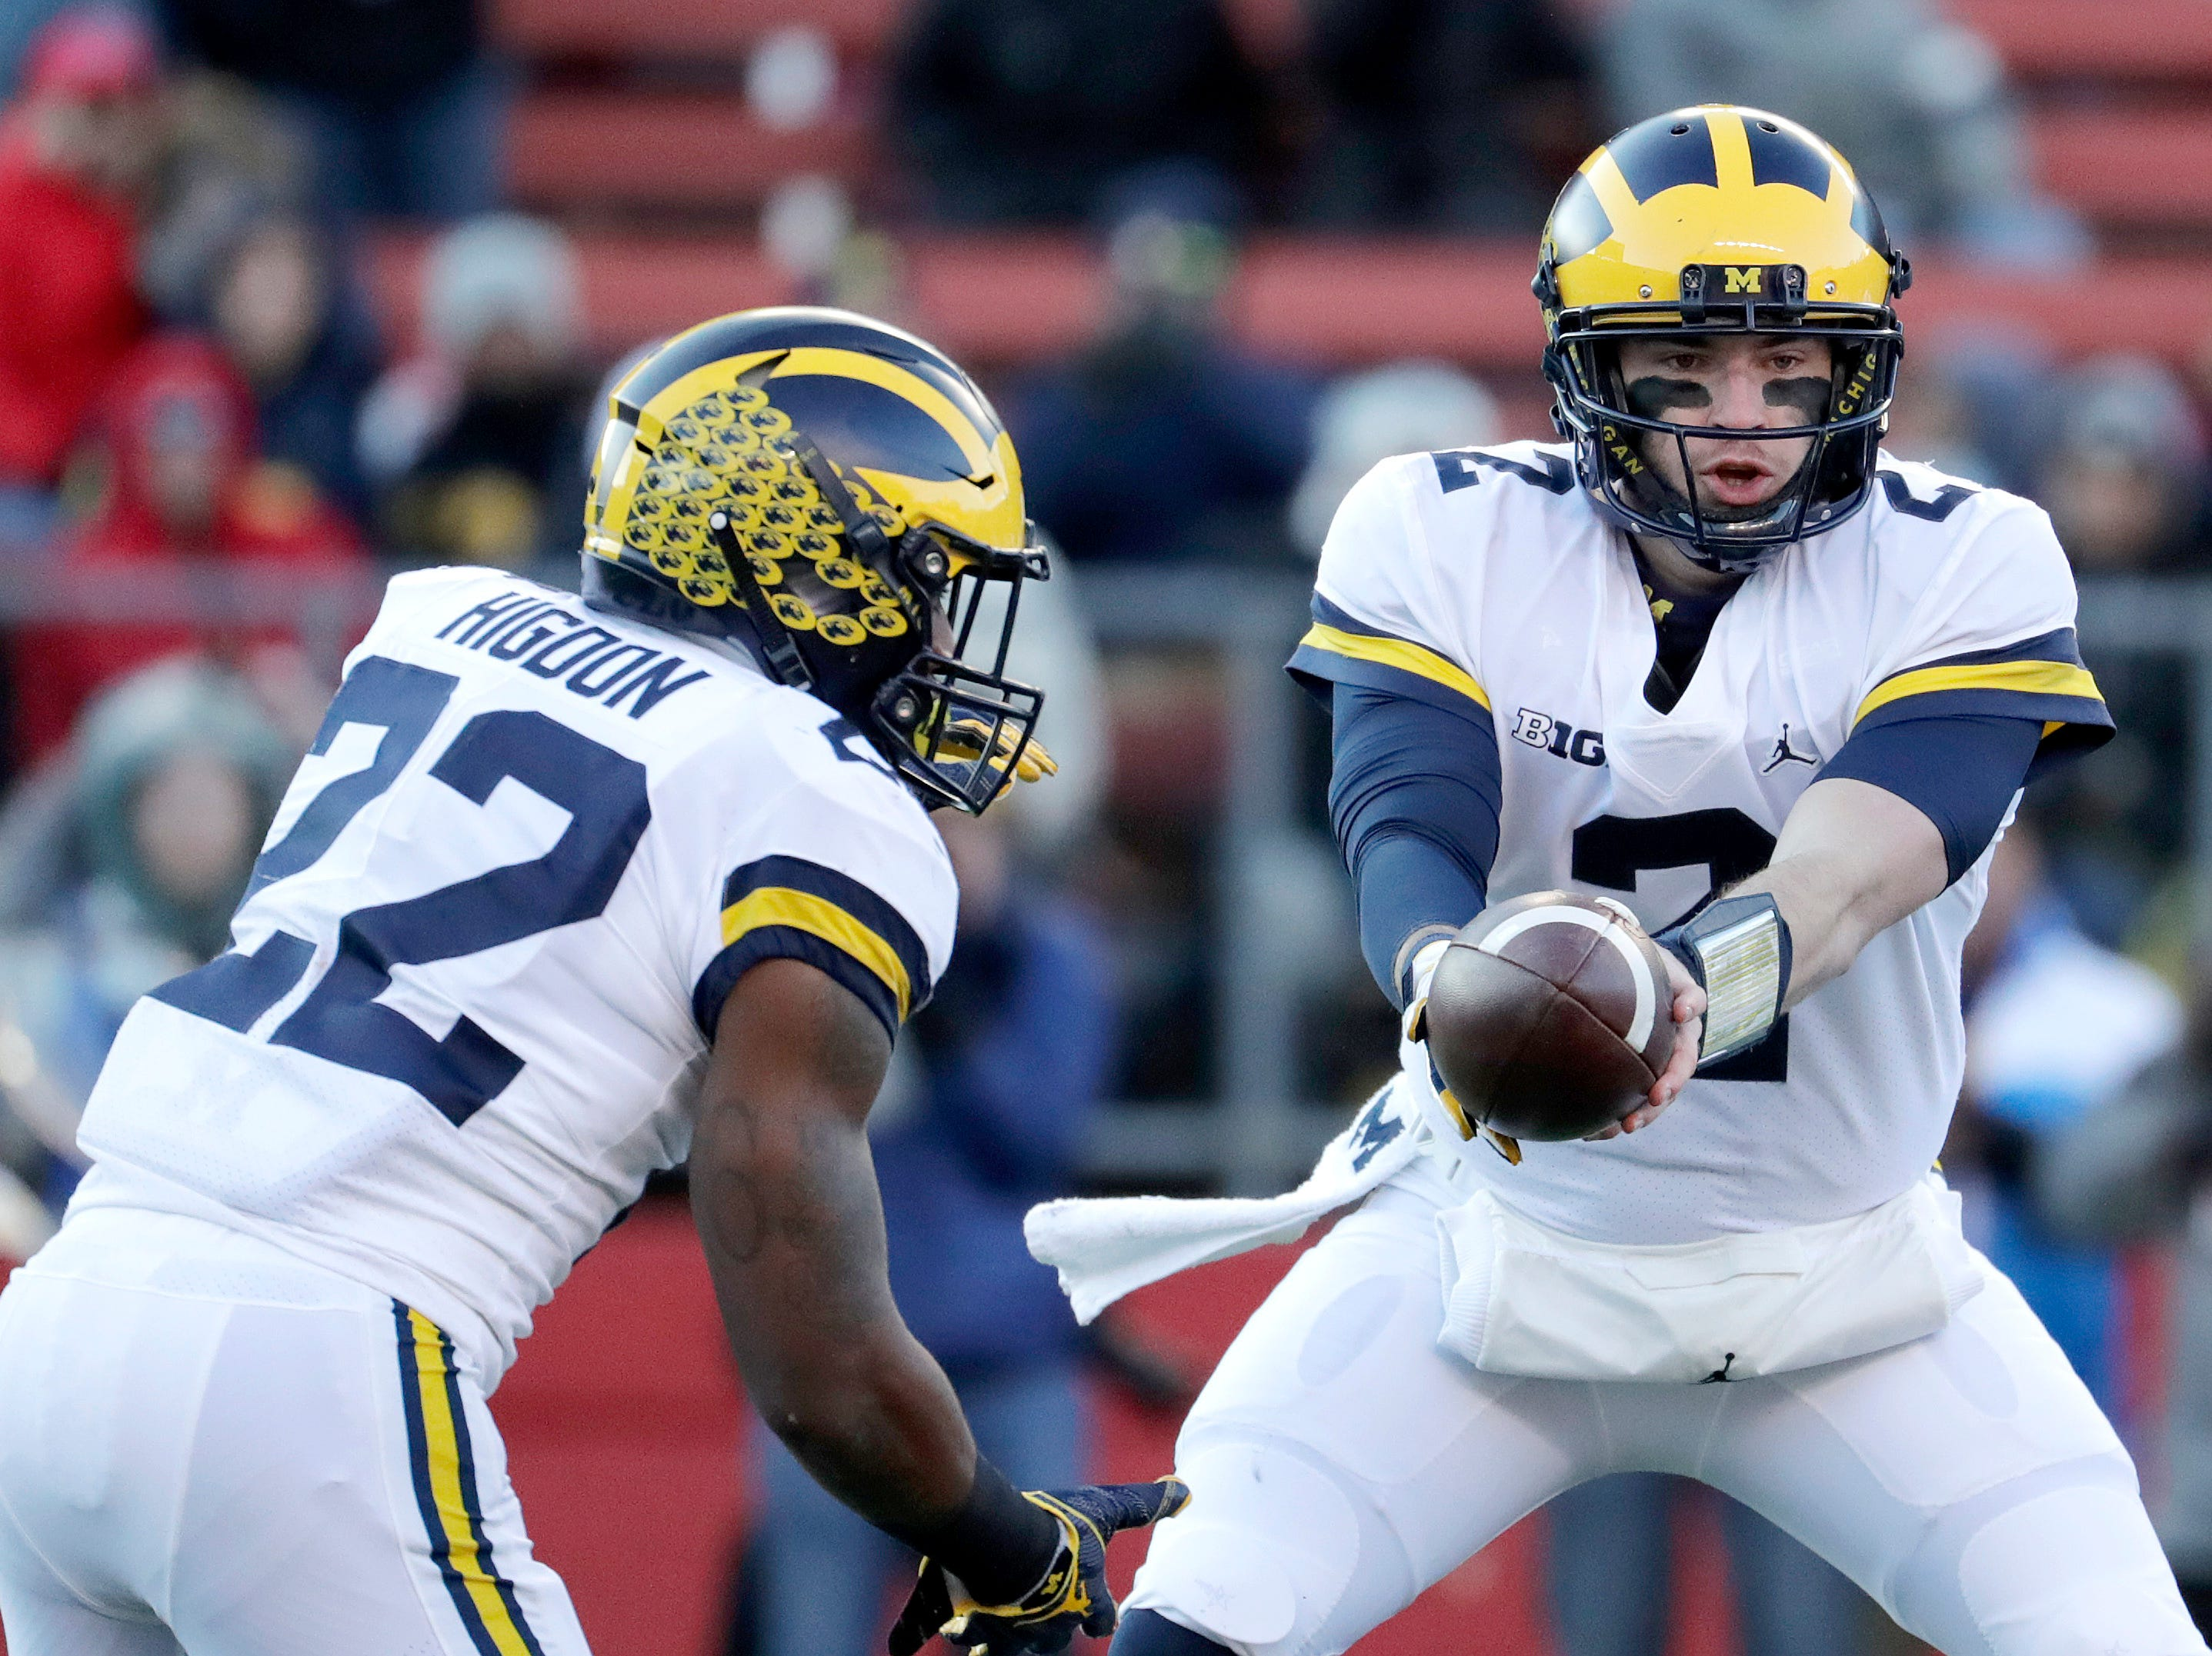 Michigan quarterback Shea Patterson hands off to running back Karan Higdon .